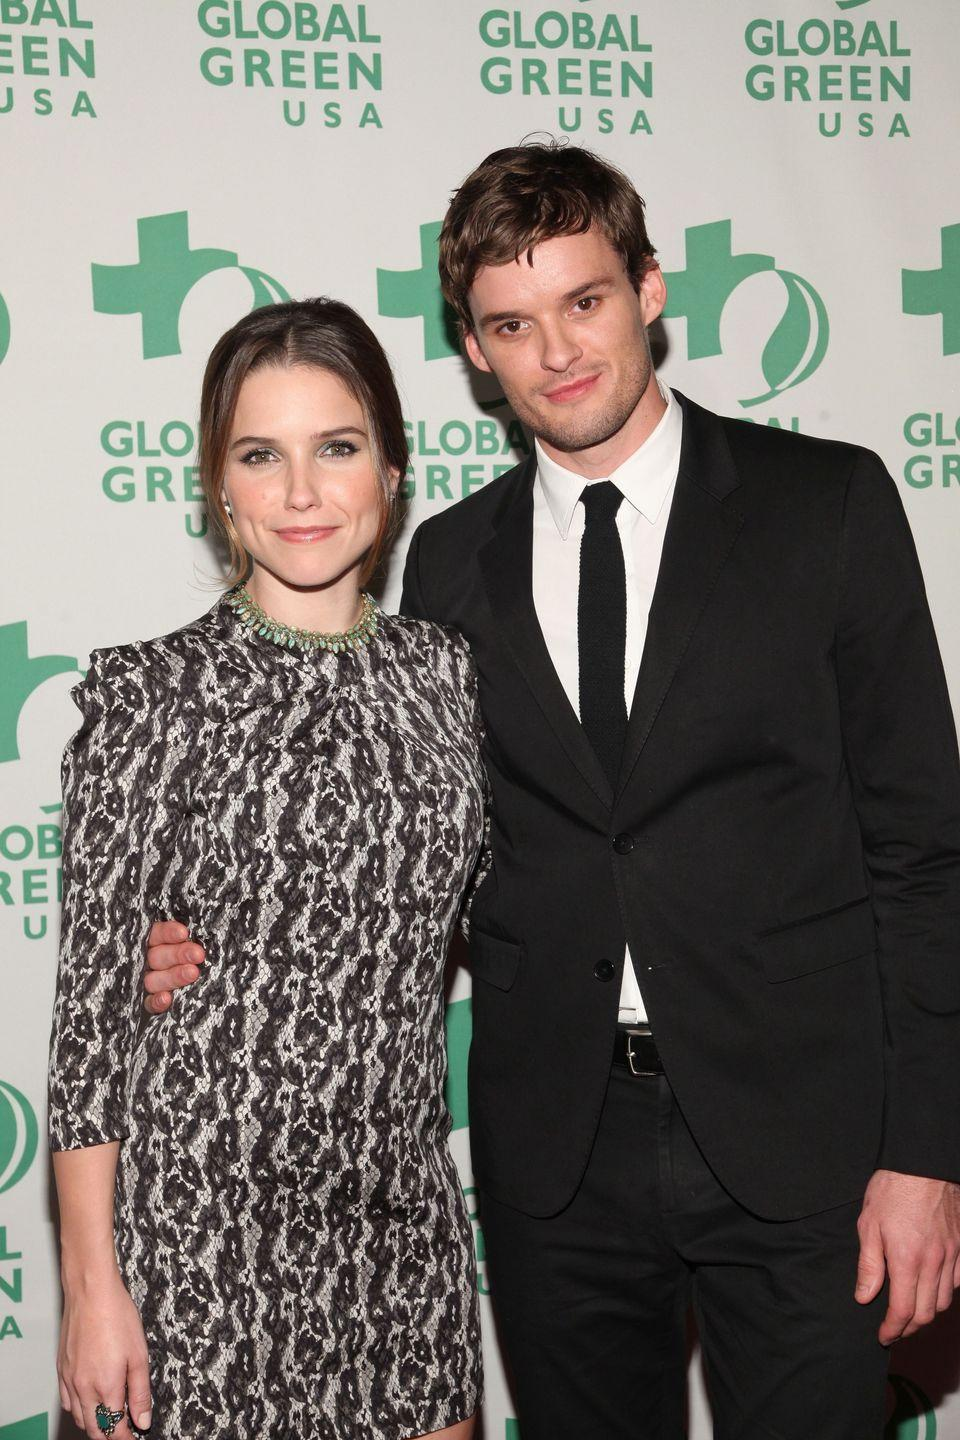 <p>In 2010, Bush and Nichols revealed that they had been dating on and off for four years before Nichols joined the actress's show, <em>One Tree Hill</em>, as her love interest. But in 2012, just as the show was winding down, the pair decided to part ways for good. </p>